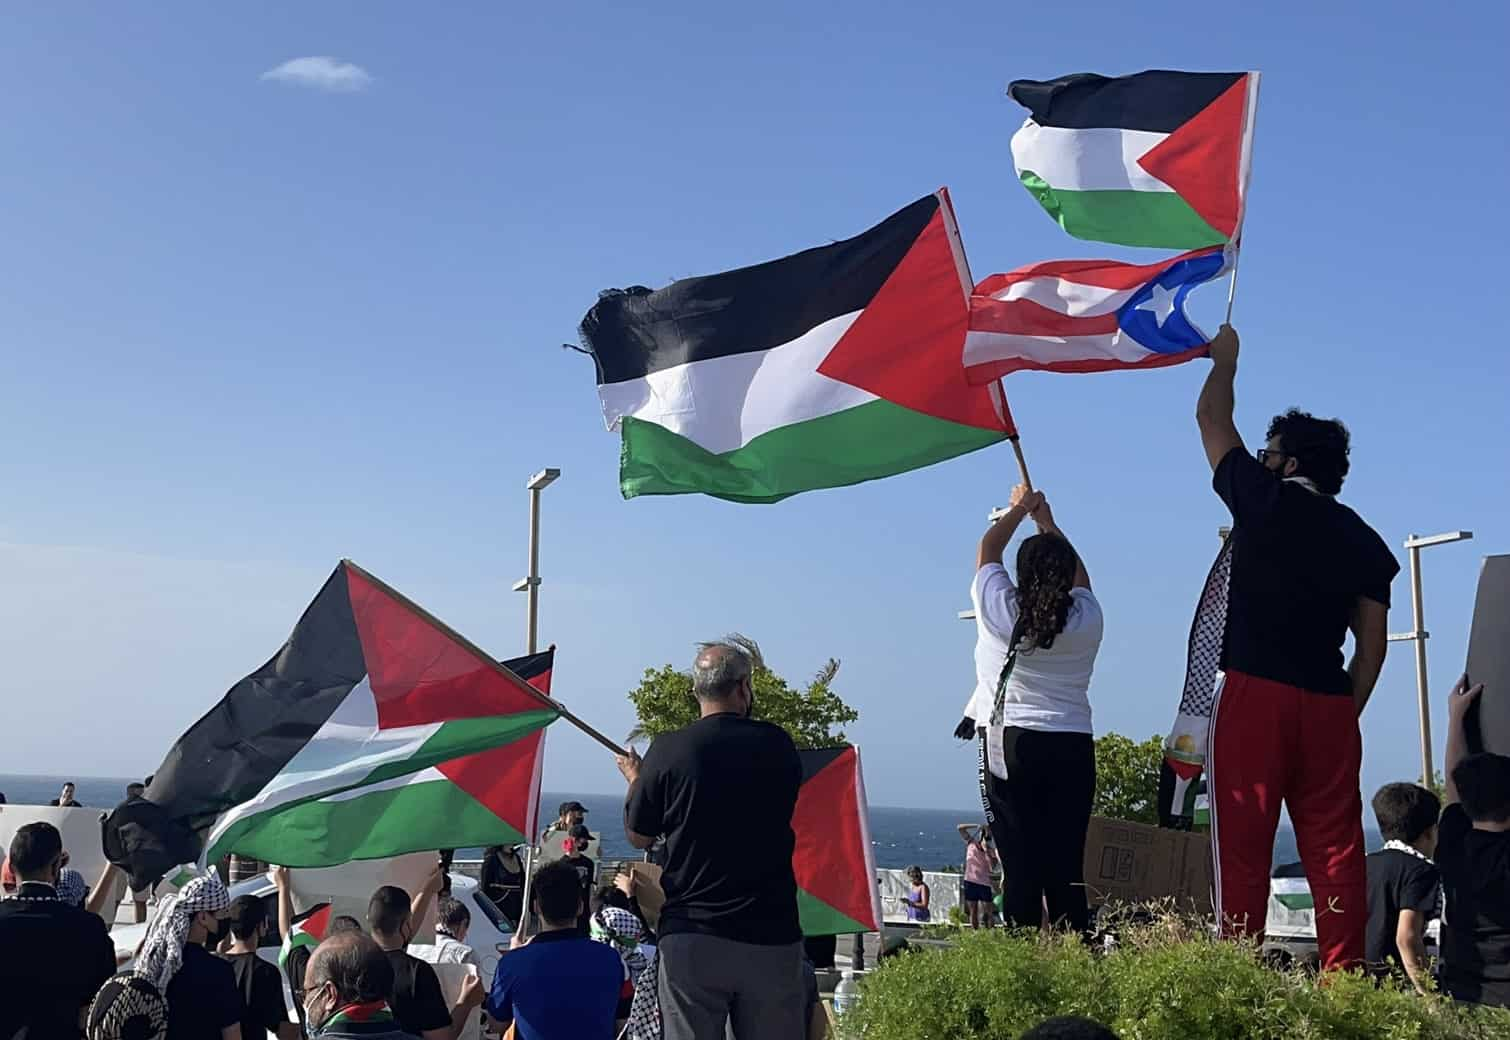 Many Puerto Ricans See Solidarity With Palestinians